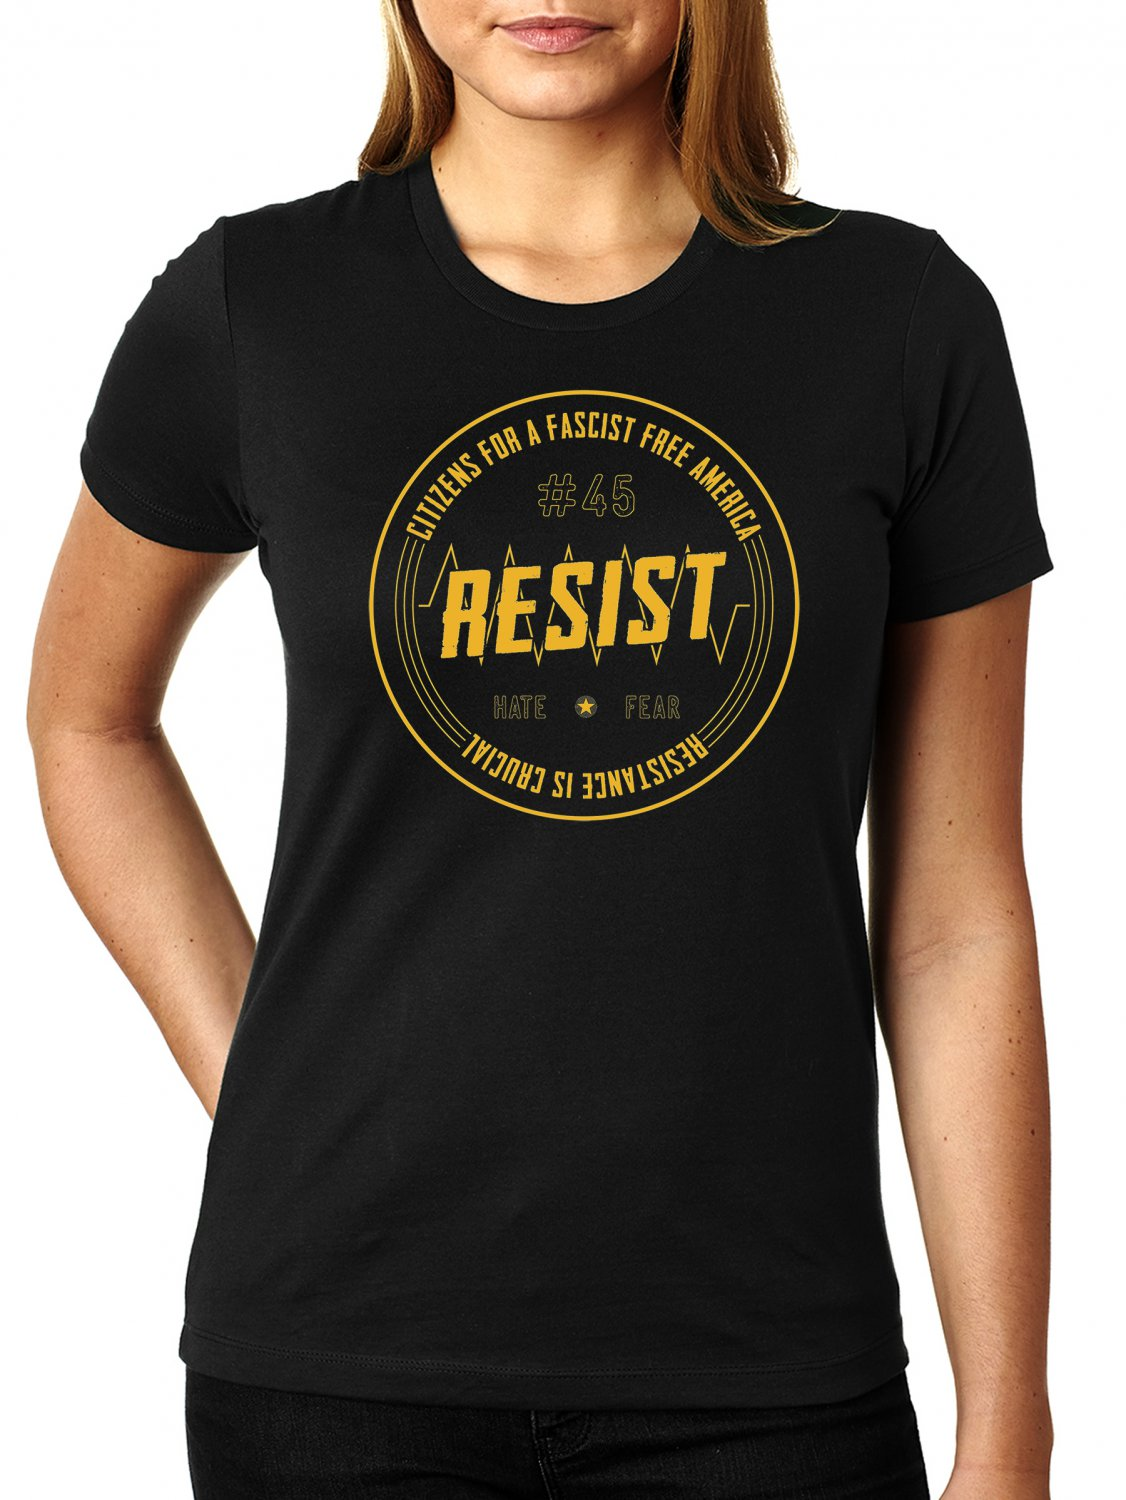 Citizens For A Fascist Free America- RESISTANCE IS CRUCIAL Cheeto Orange Ink - Women's SIZE M